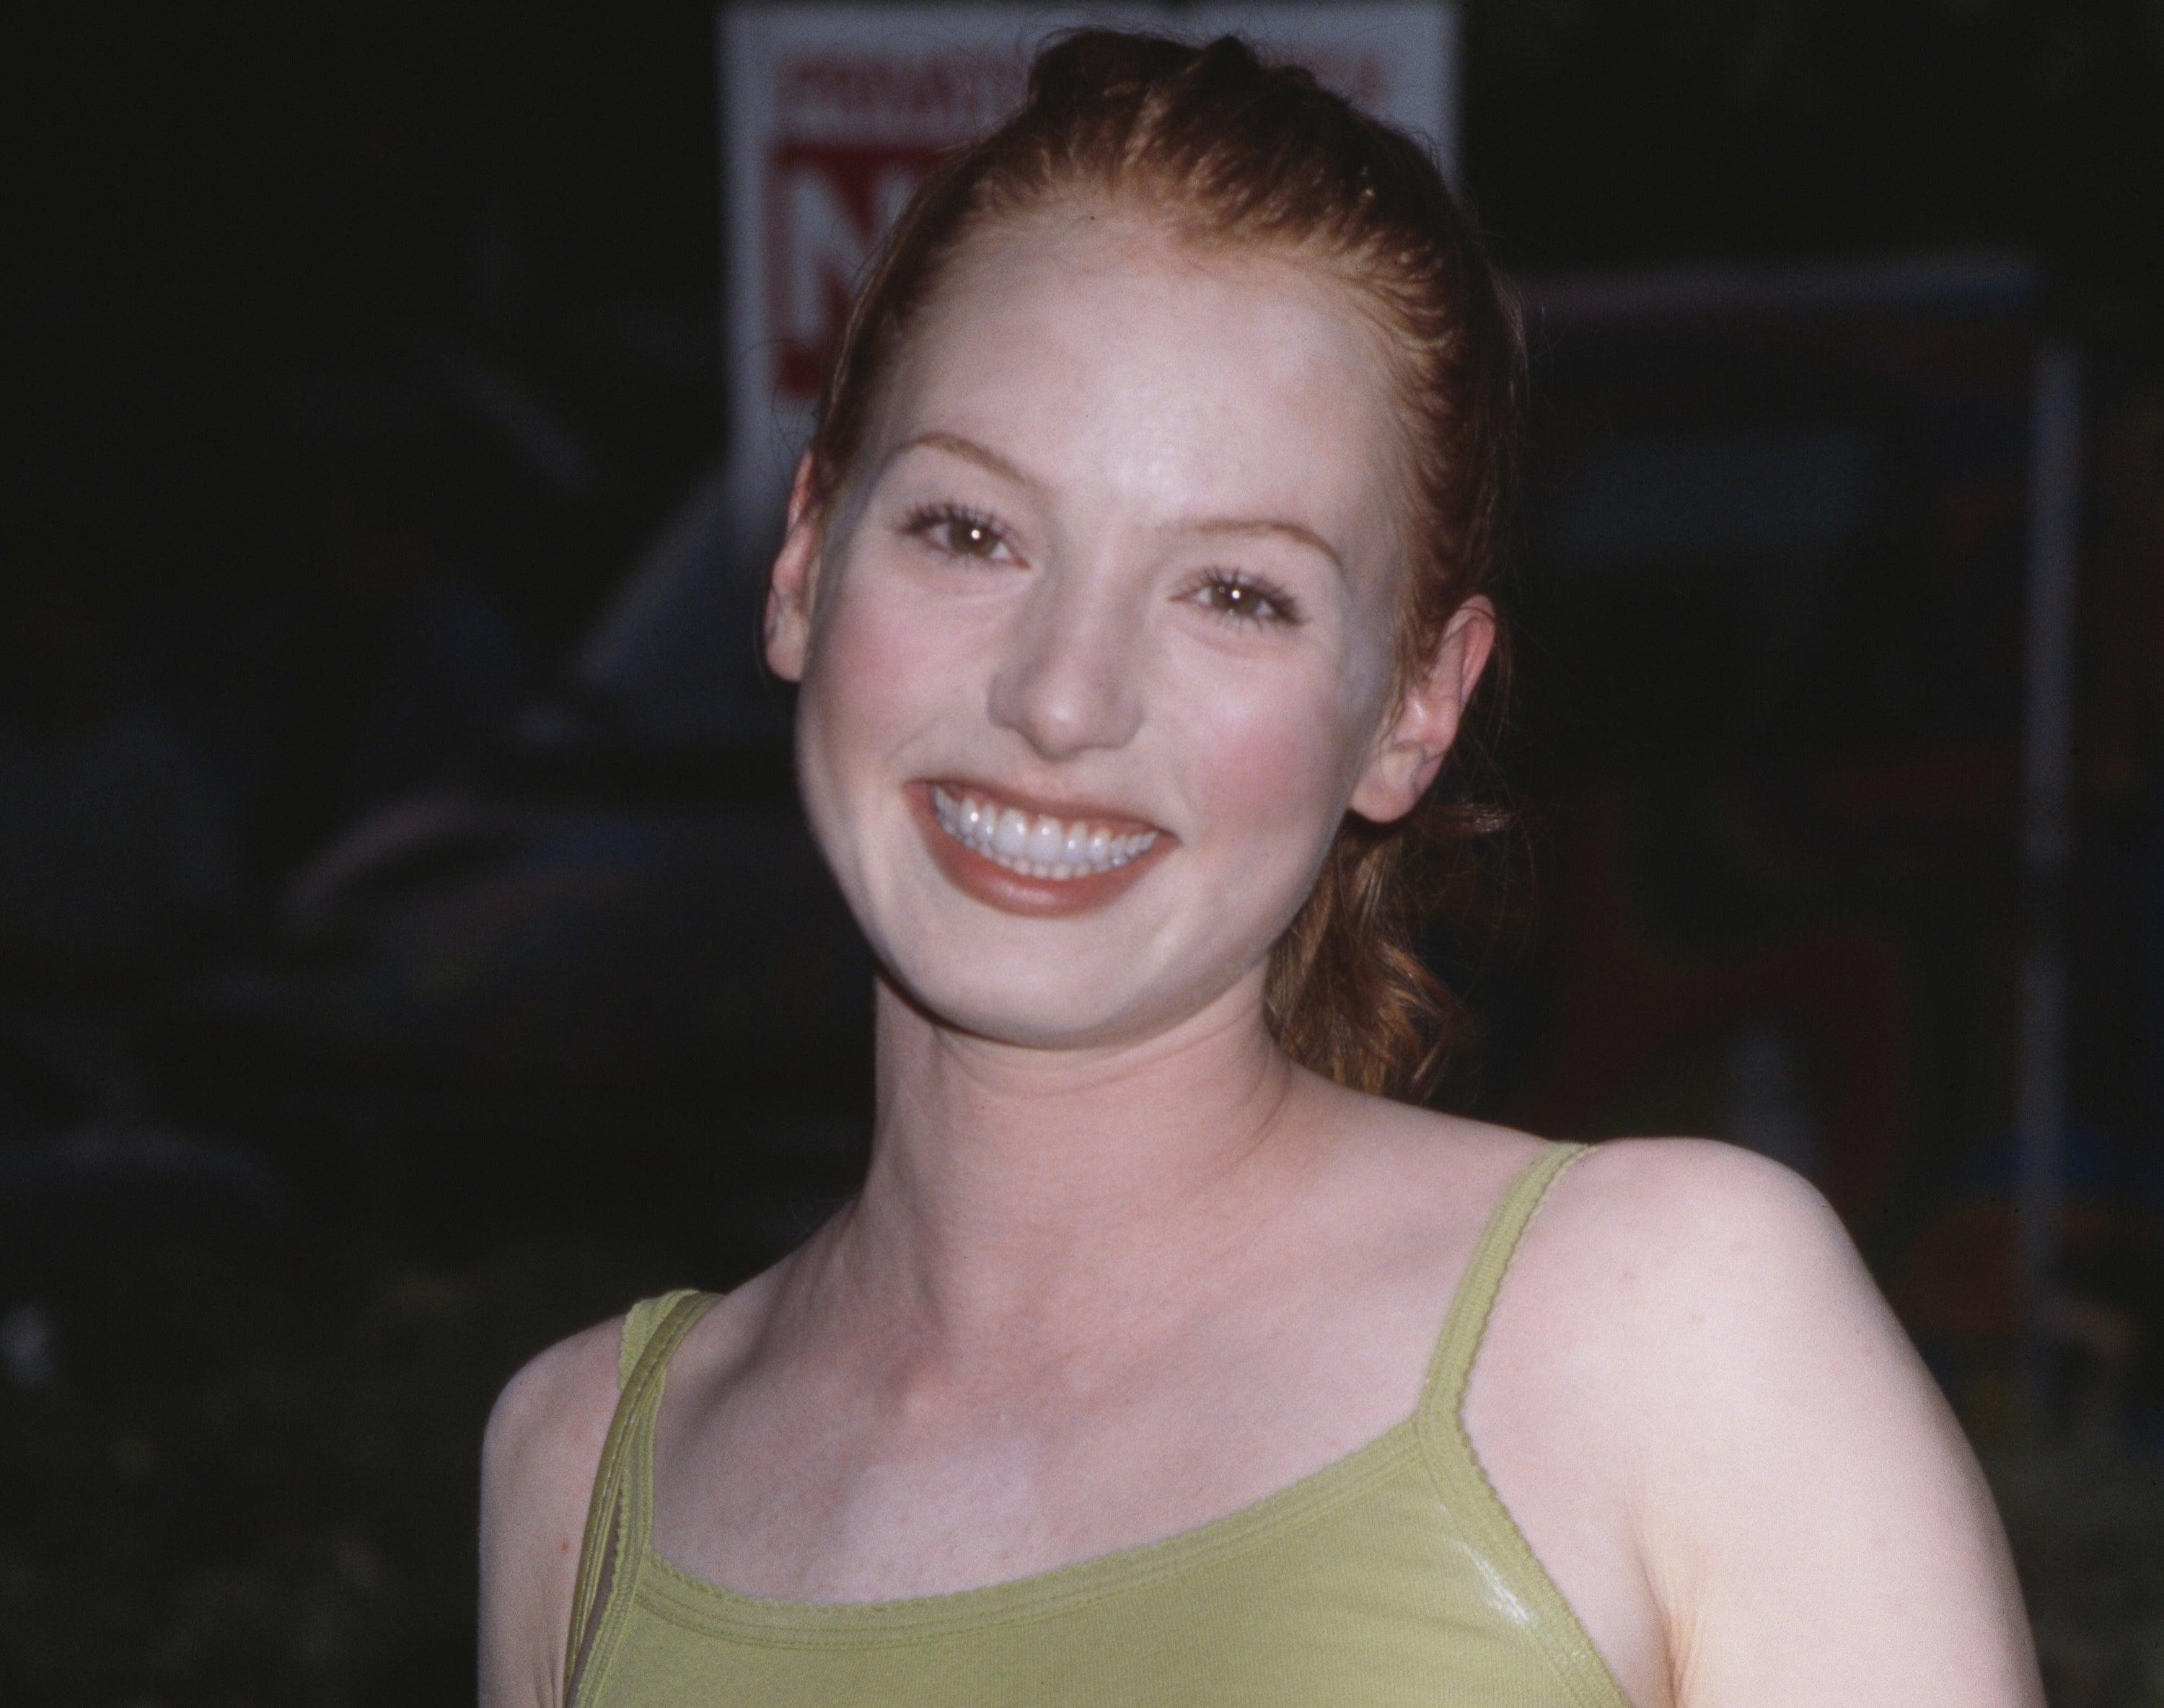 A young Alicia smiles while wearing a green tank top